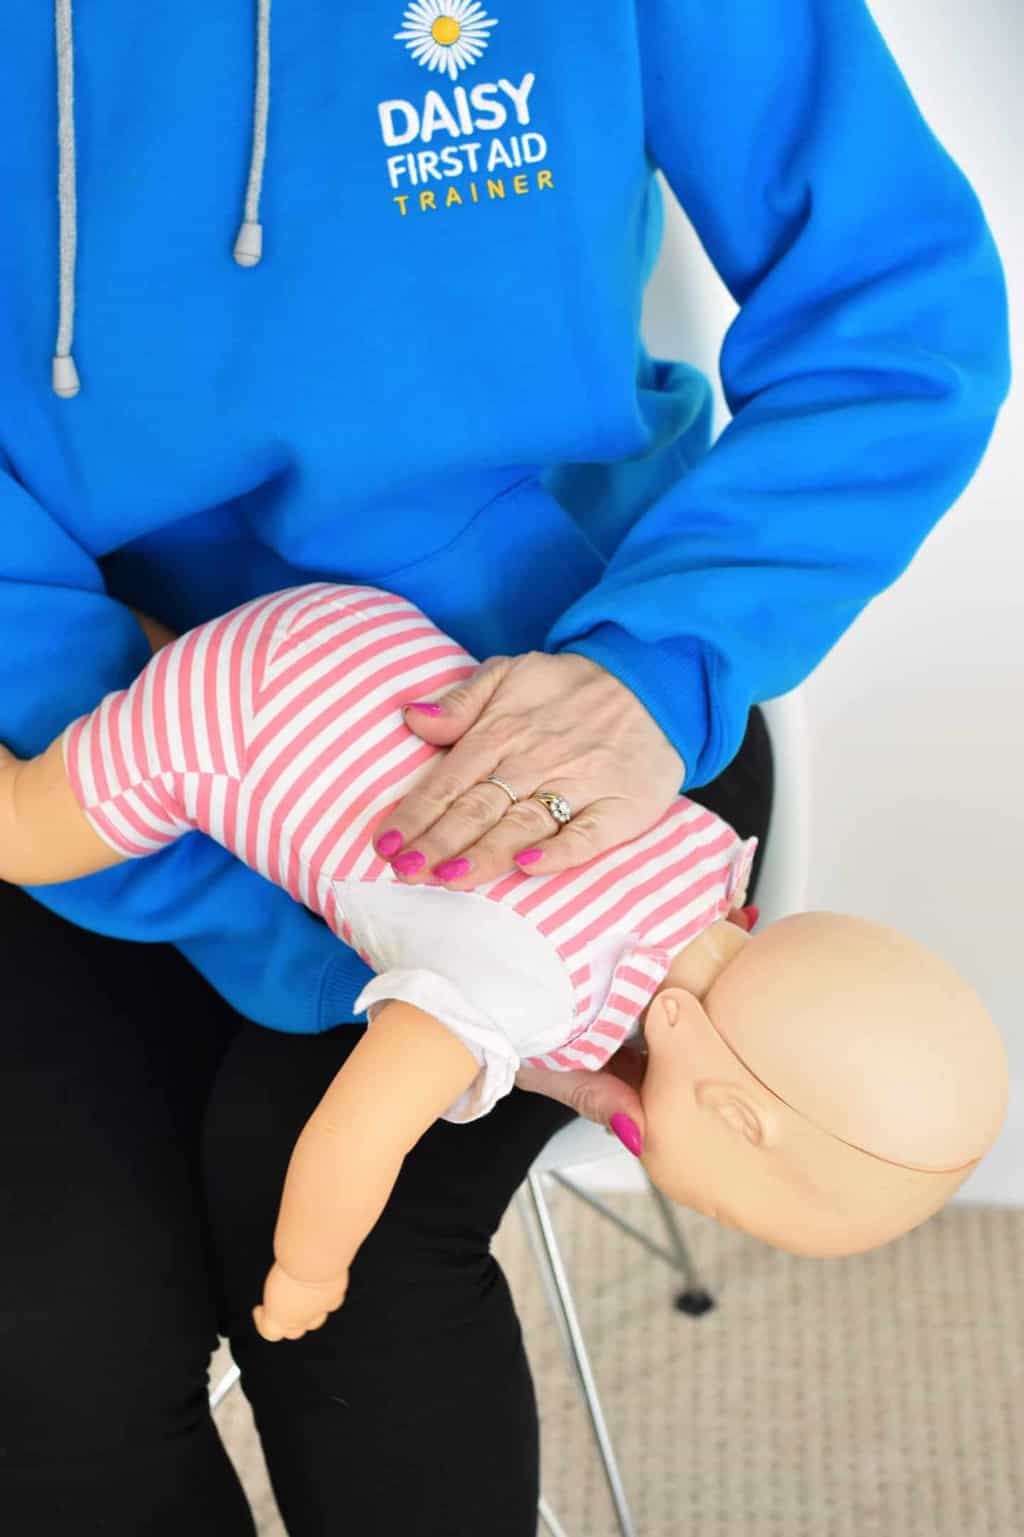 Daisy First Aid, Baby Back Blows Choking, www.daisyfirstaid.com